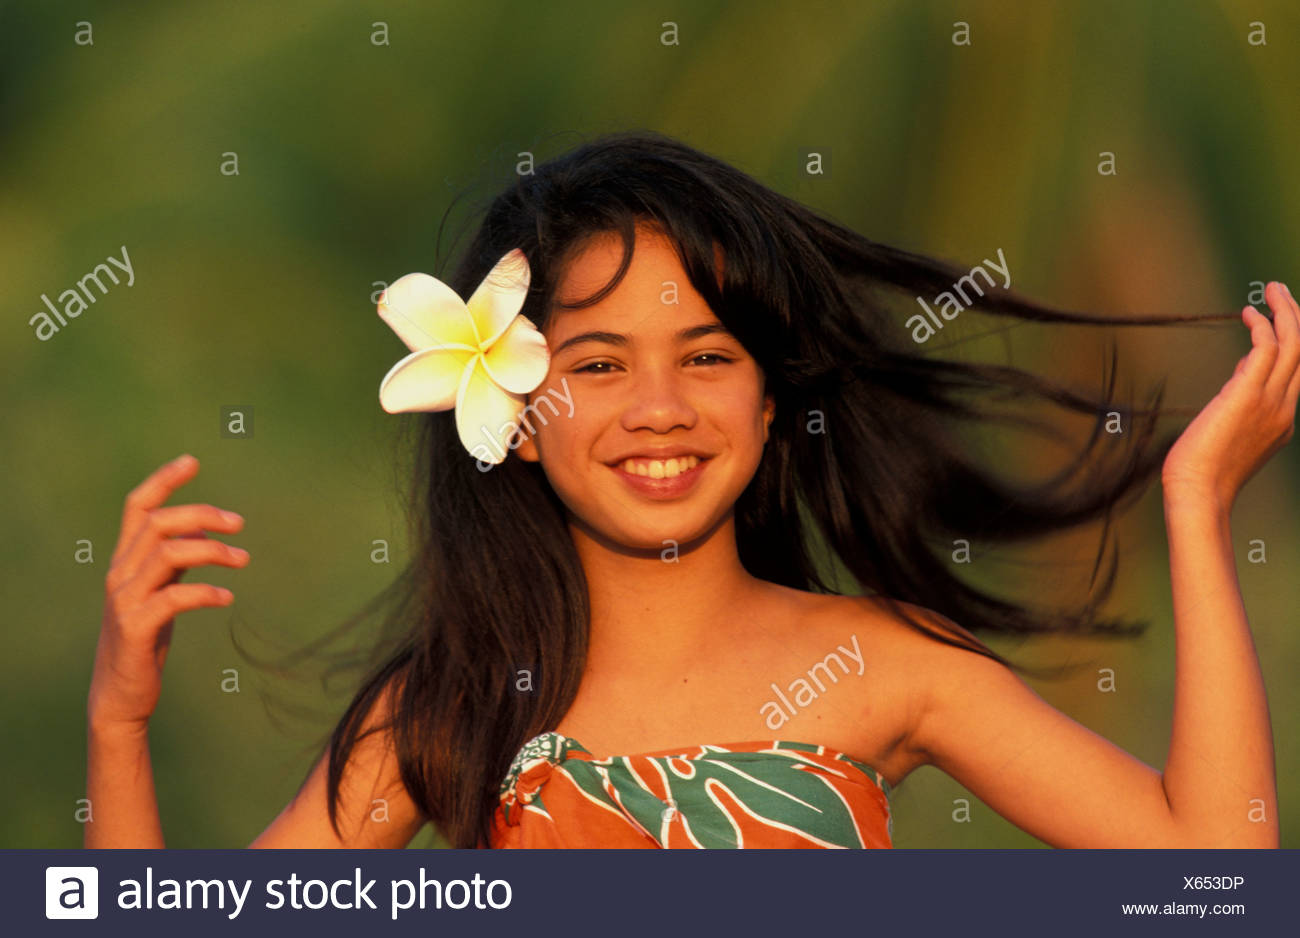 Young local hawaiian girl smiling with flower in her hair stock young local hawaiian girl smiling with flower in her hair izmirmasajfo